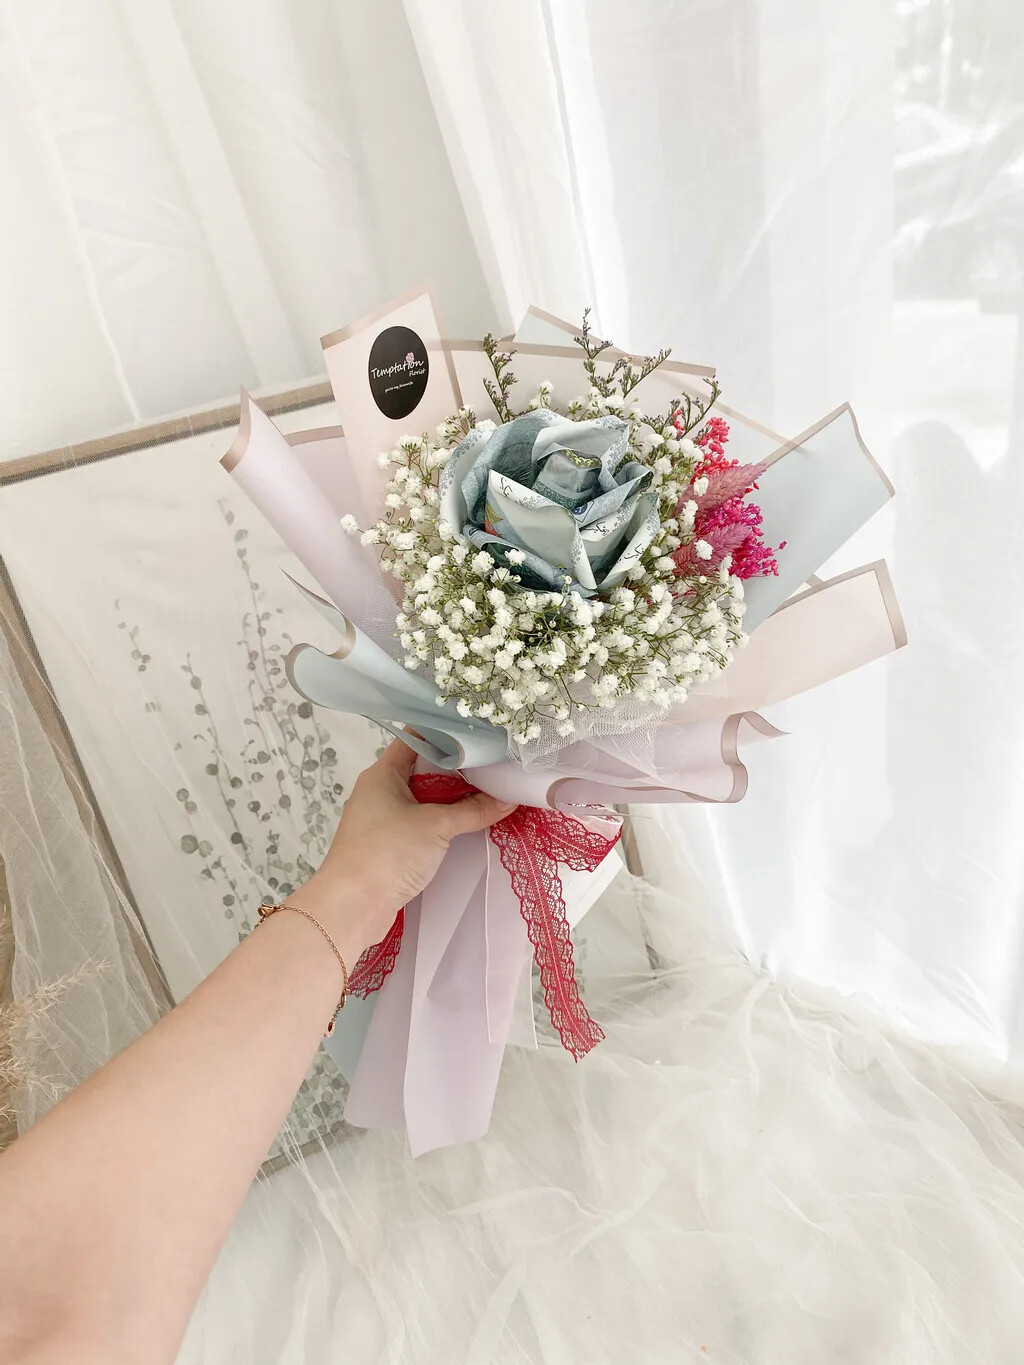 Hottest (By: Temptation Florist from Seremban)